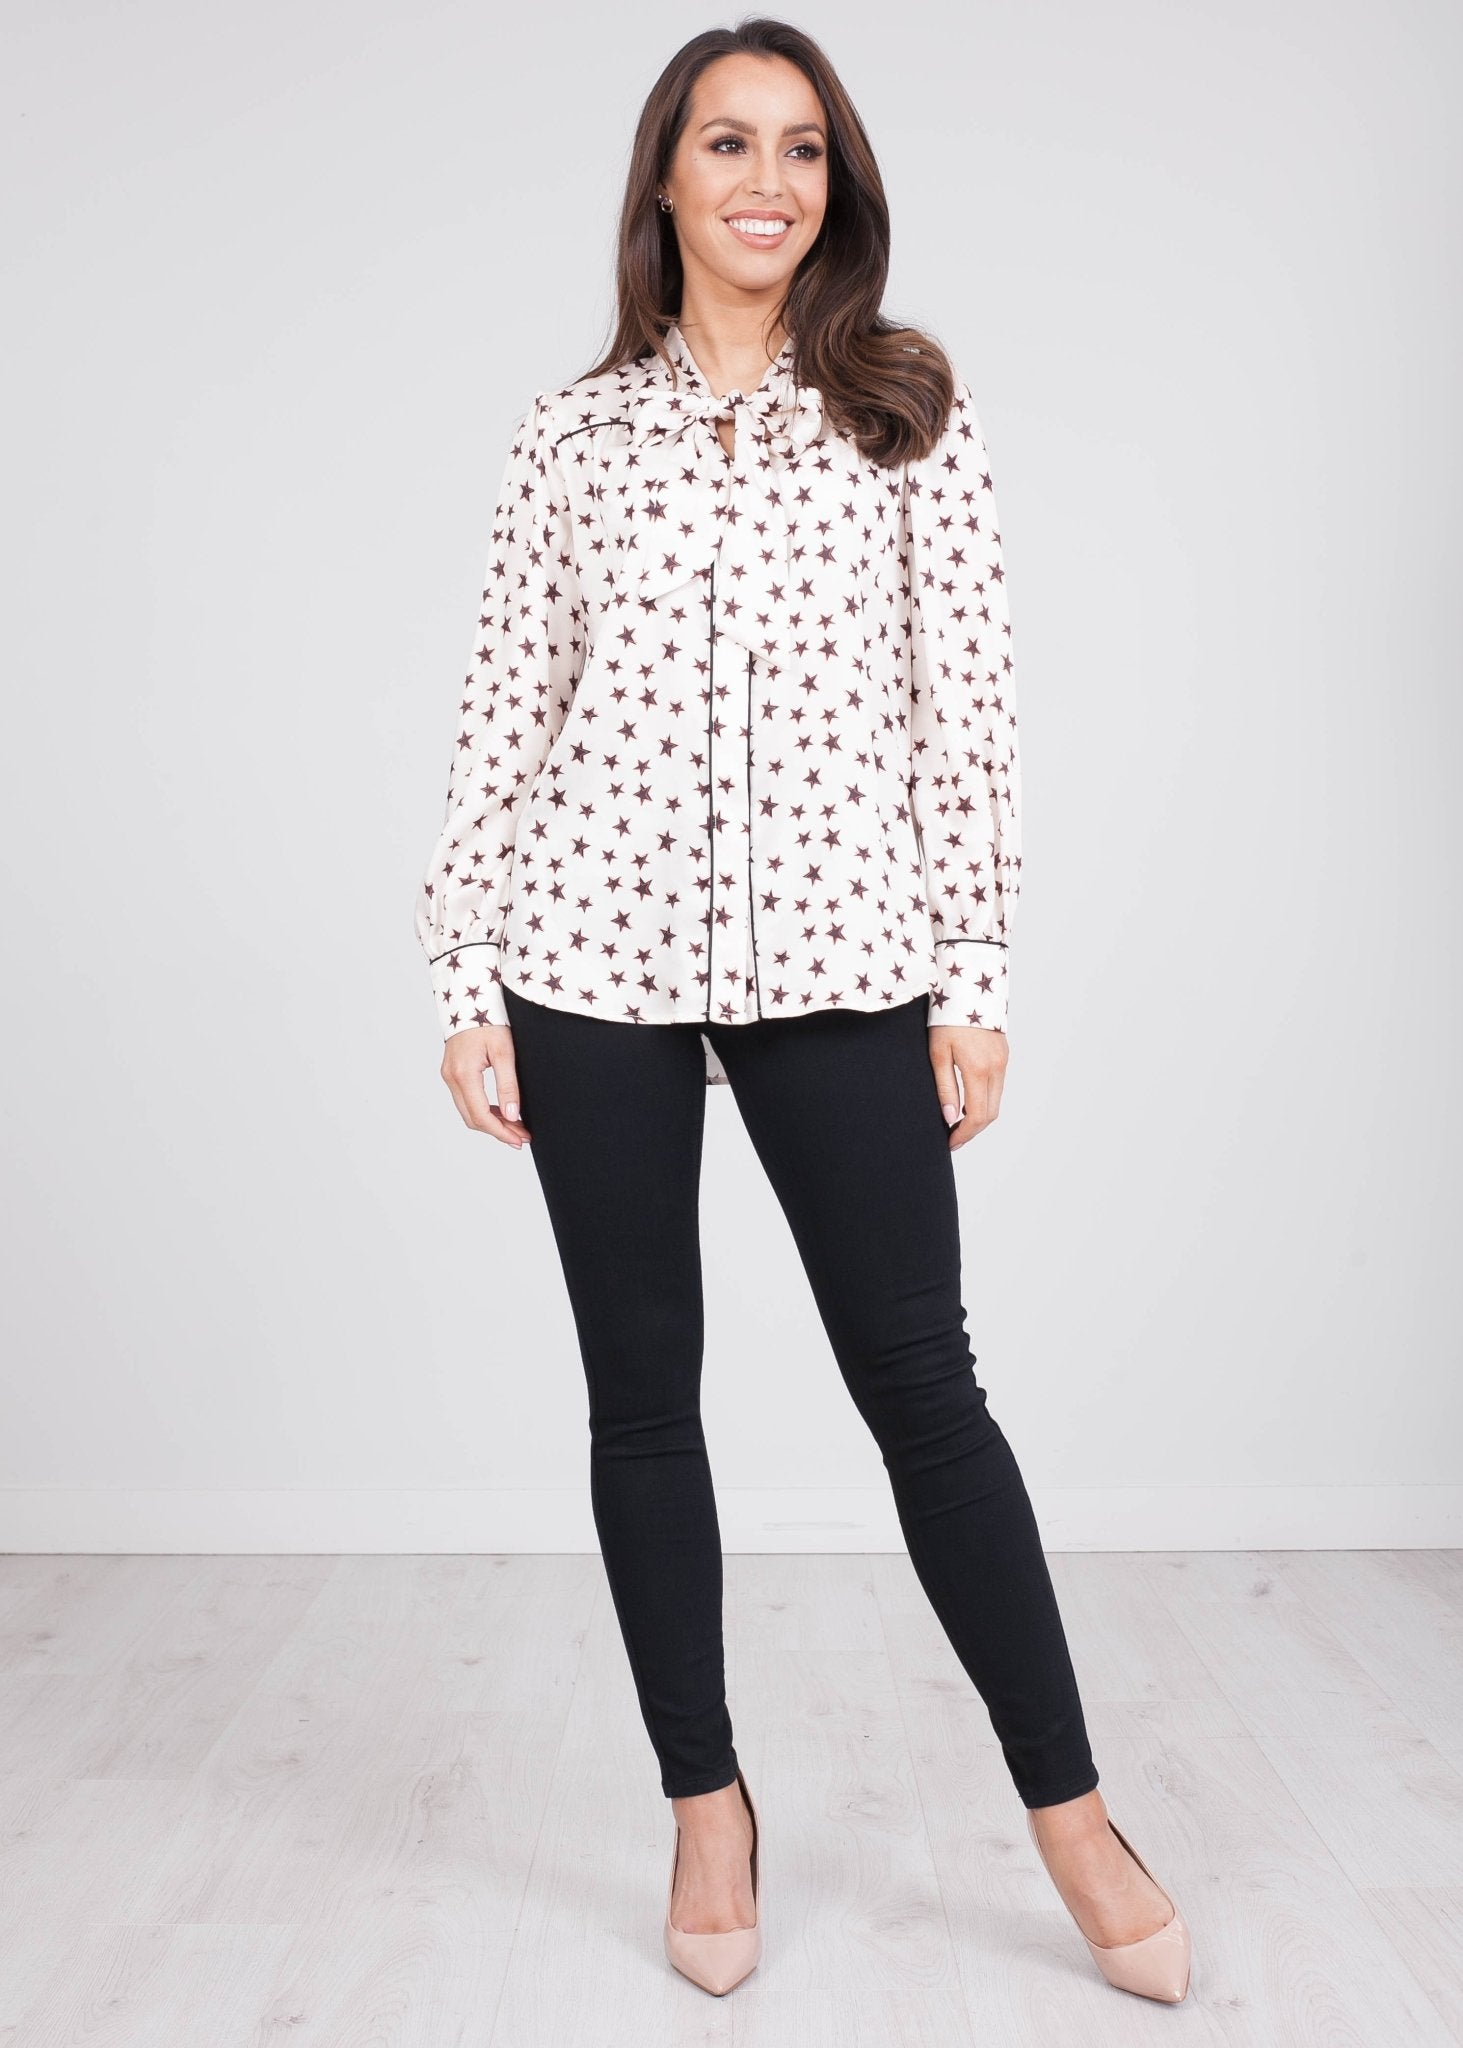 Rita Star Long Sleeve Blouse - The Walk in Wardrobe